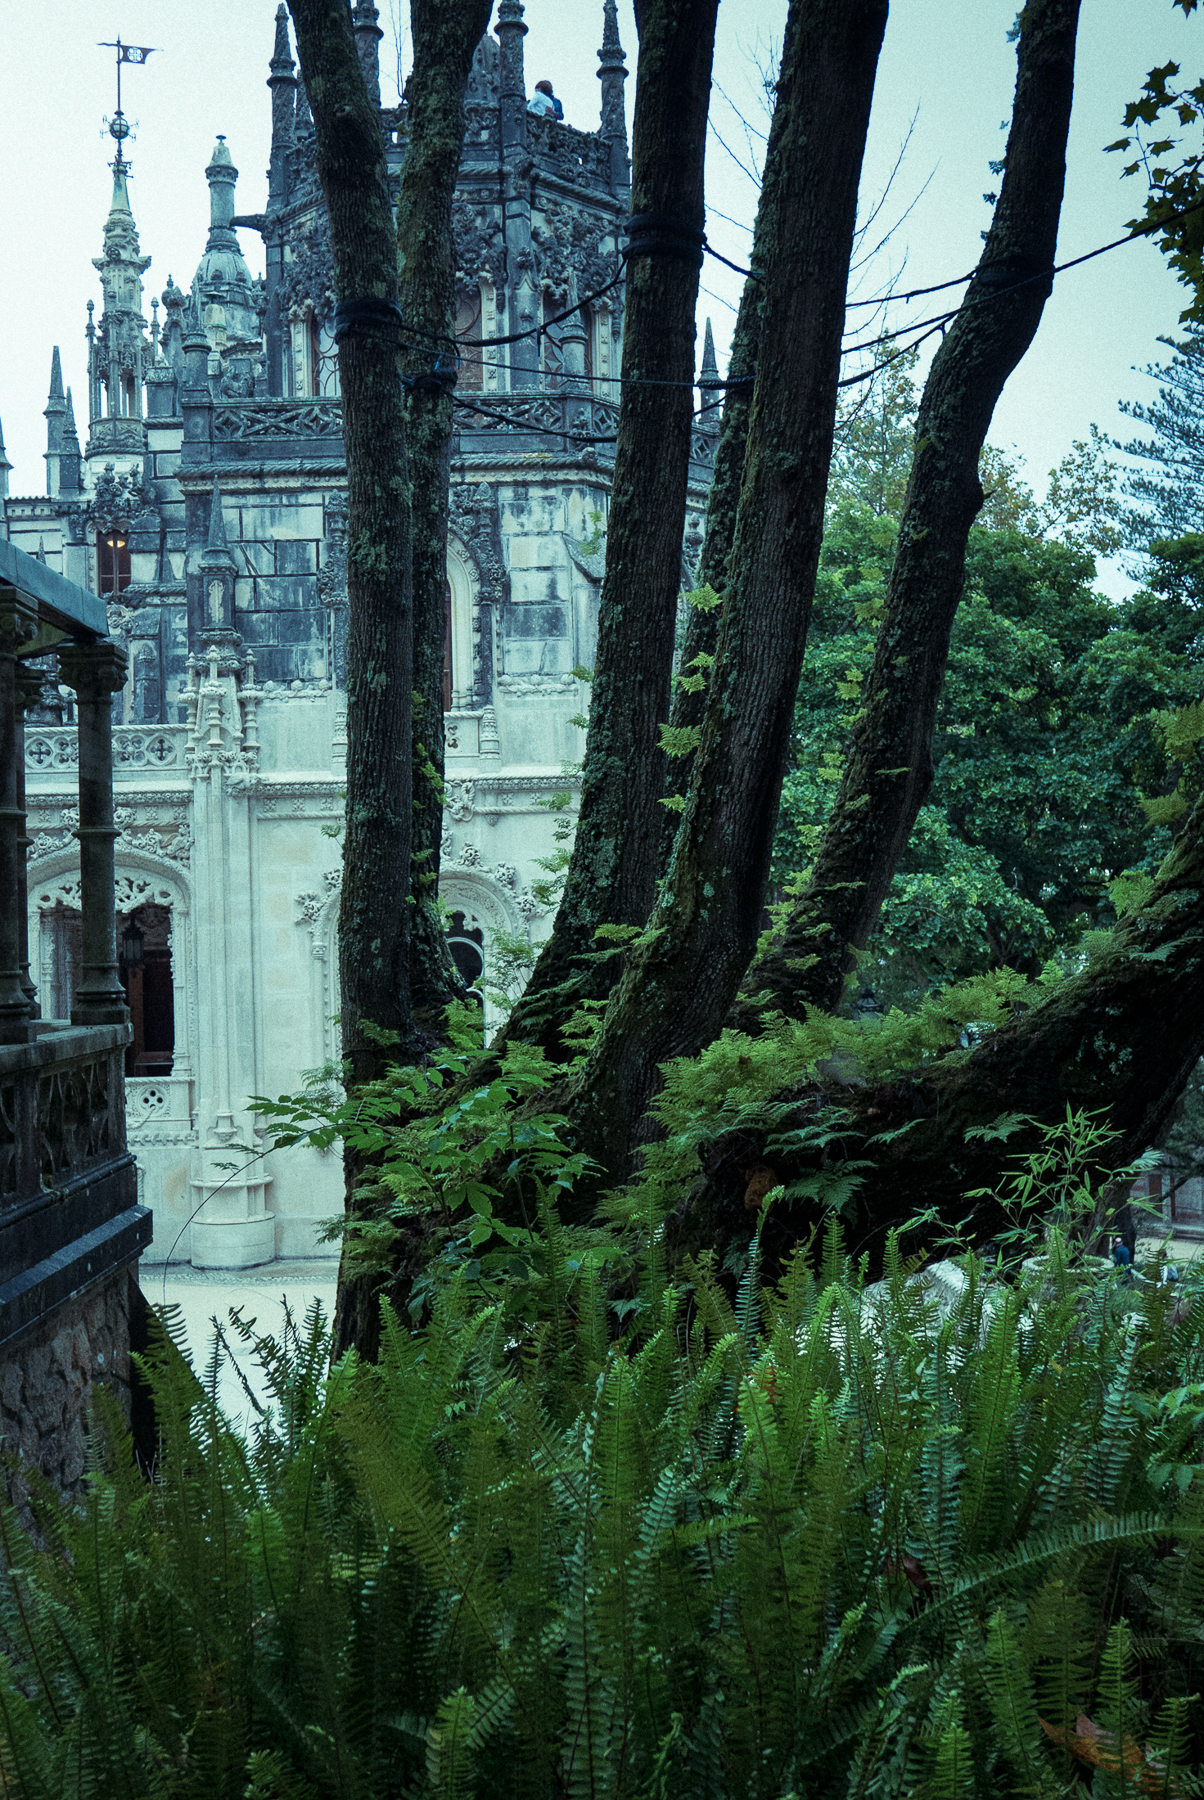 Photo workshops in Lisbon and the Algarve- Sintra, mock-gothic Quinta da Regaleira palace